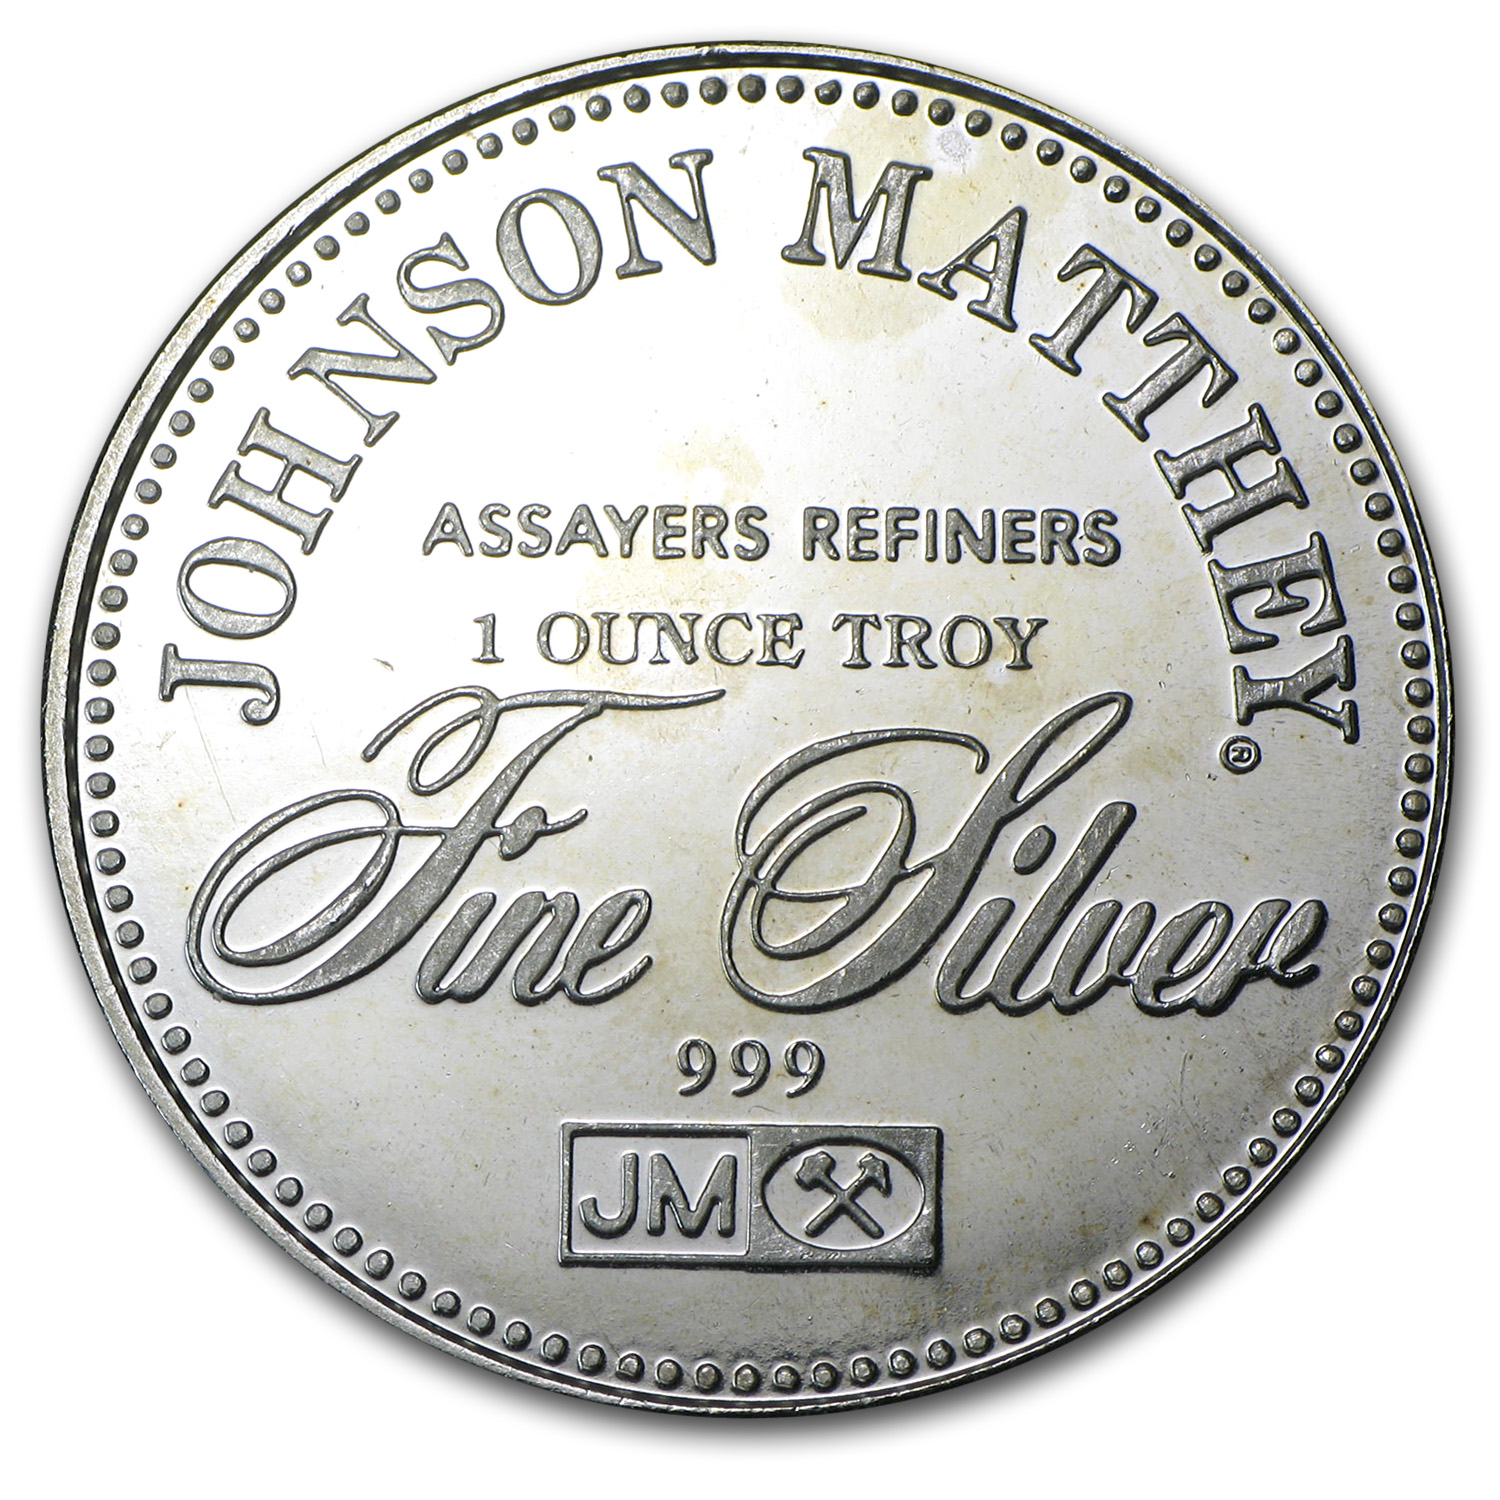 1 oz Silver Round - Johnson Matthey (Sealed, Right to Bear Arms)